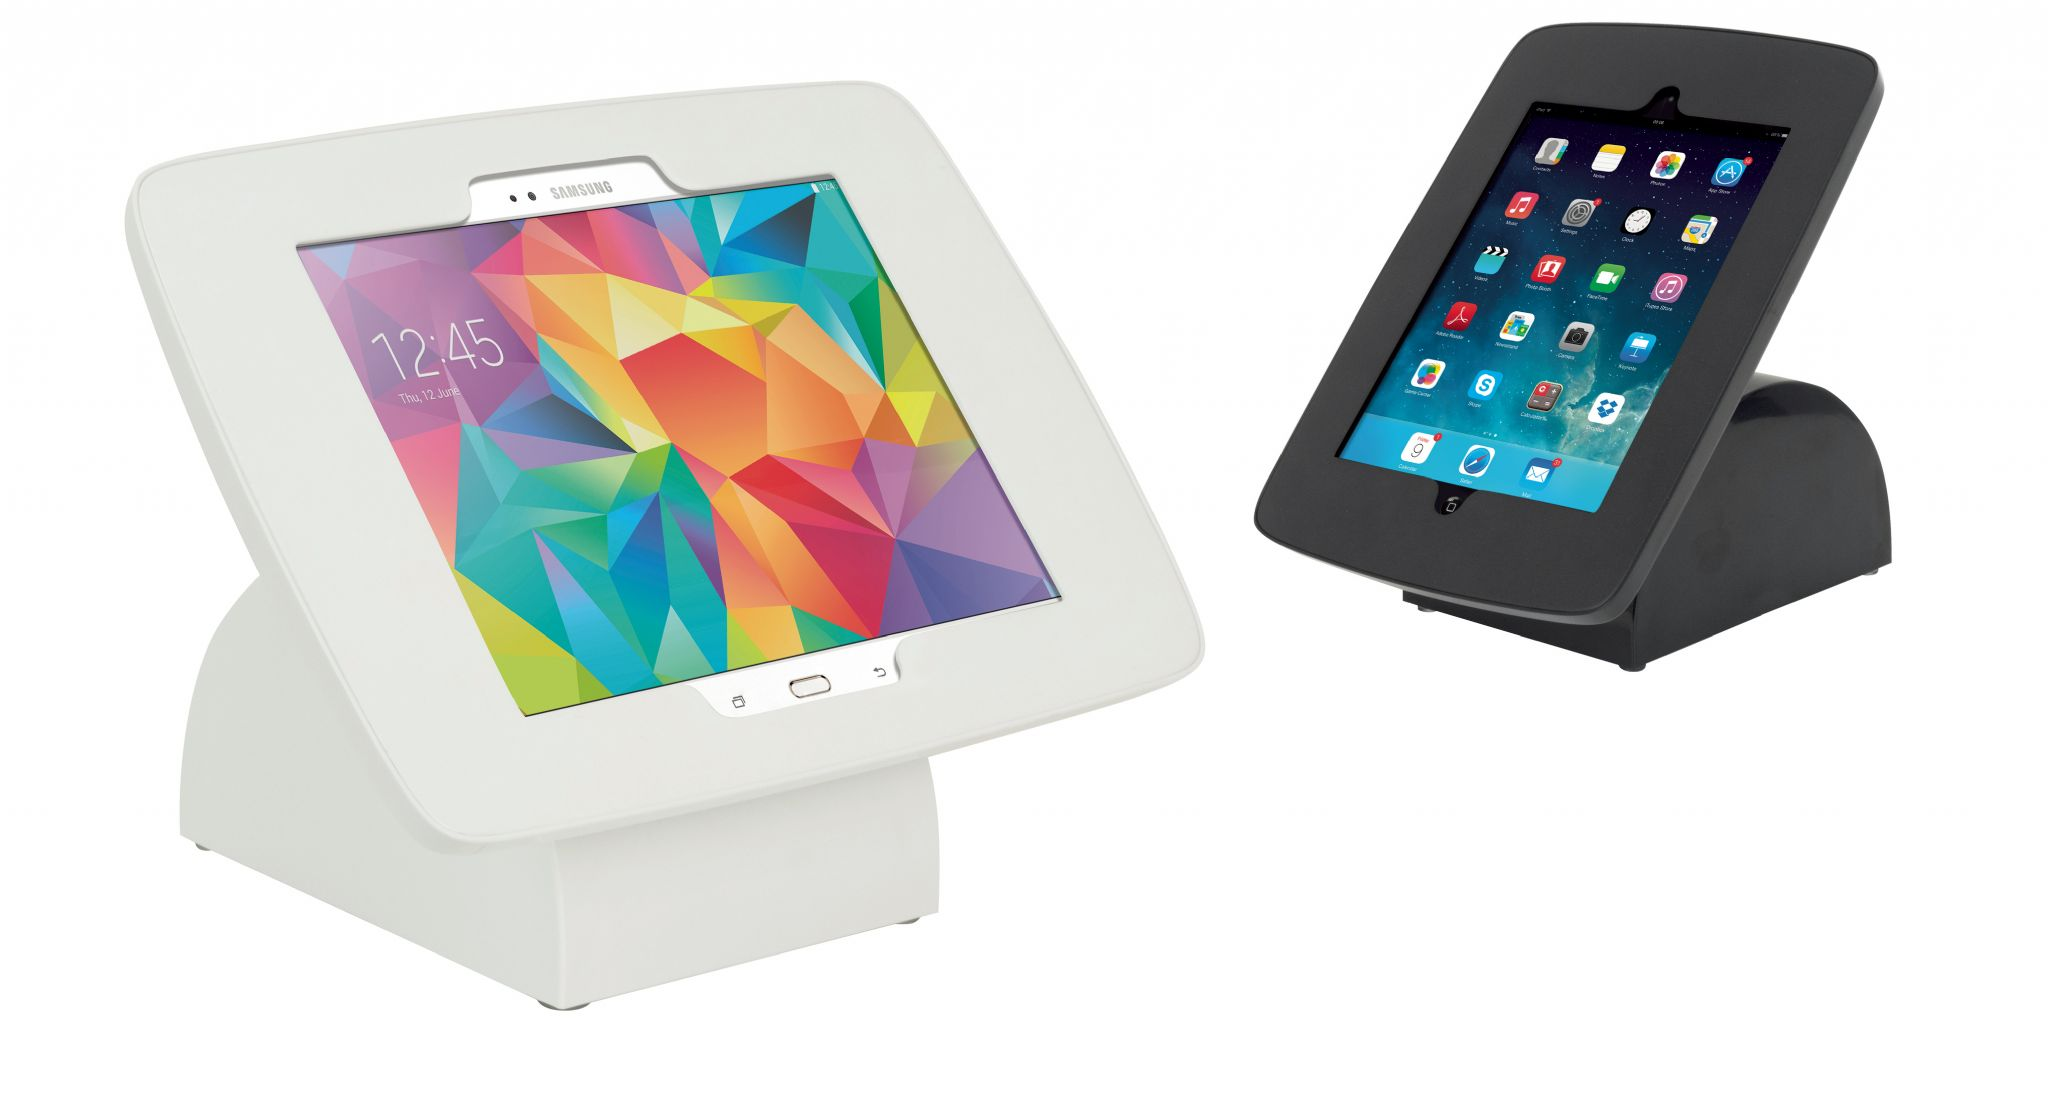 Tablet Holder Ipad Or Galaxy Tab For Counter Or Desktop Use